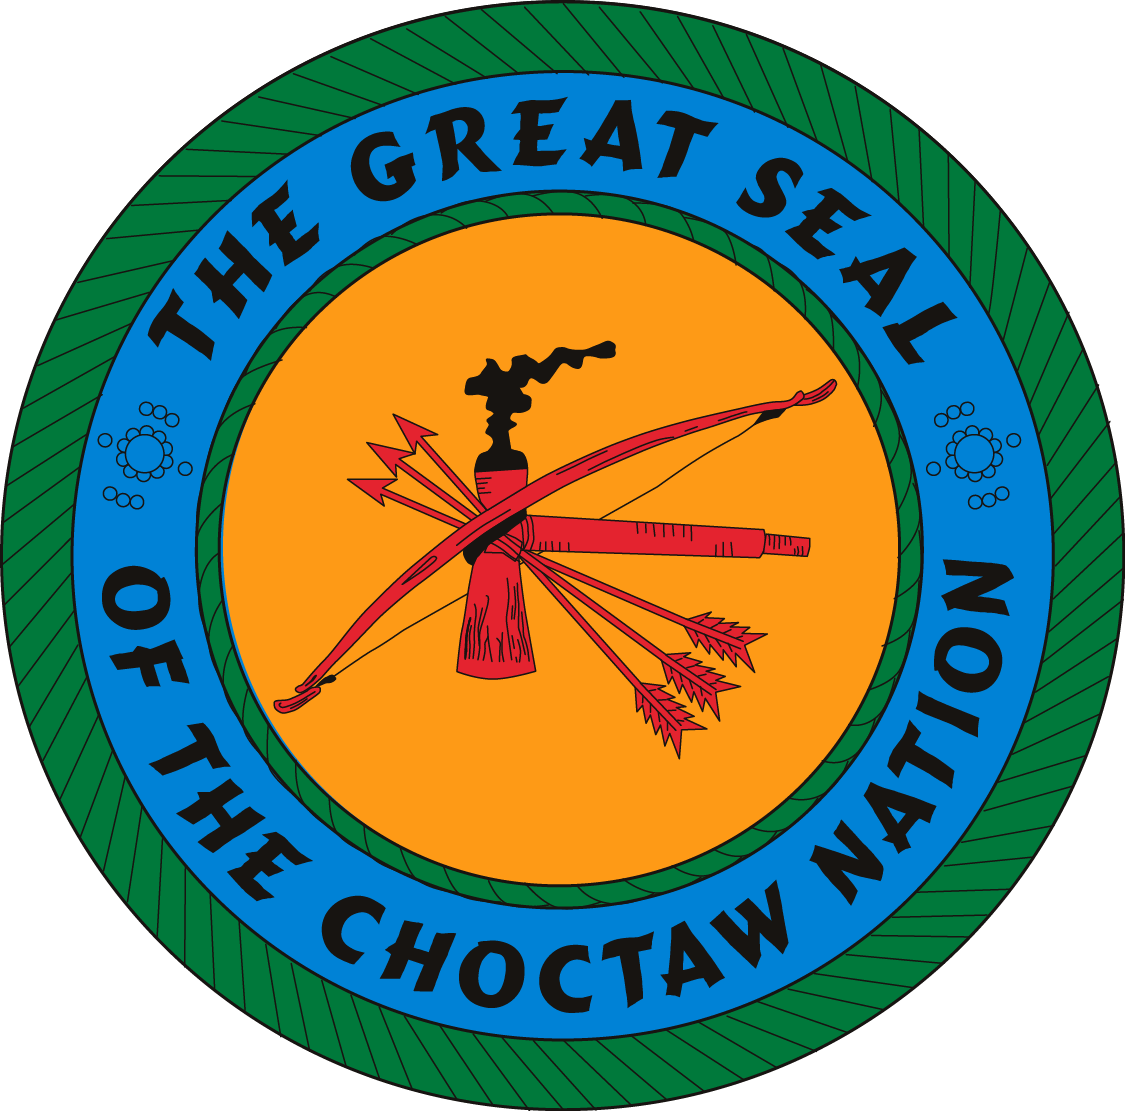 Choctaw Nation Seal Choctaw Nation American Indian Heritage Choctaw